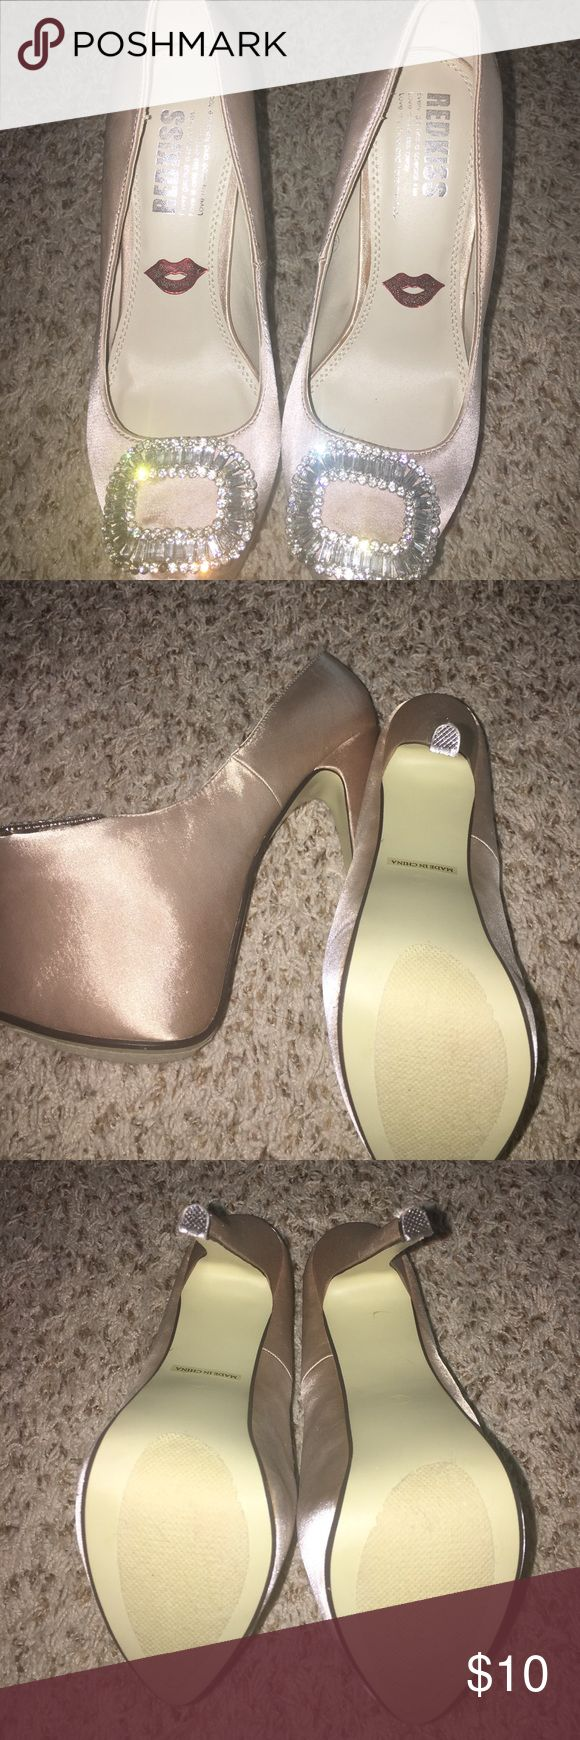 Red Kiss Cream Pumps 🔺BRAND NEW & NEVER WORN! Size 8. NO BOX & NOT interested in any trades. red kiss Shoes Heels